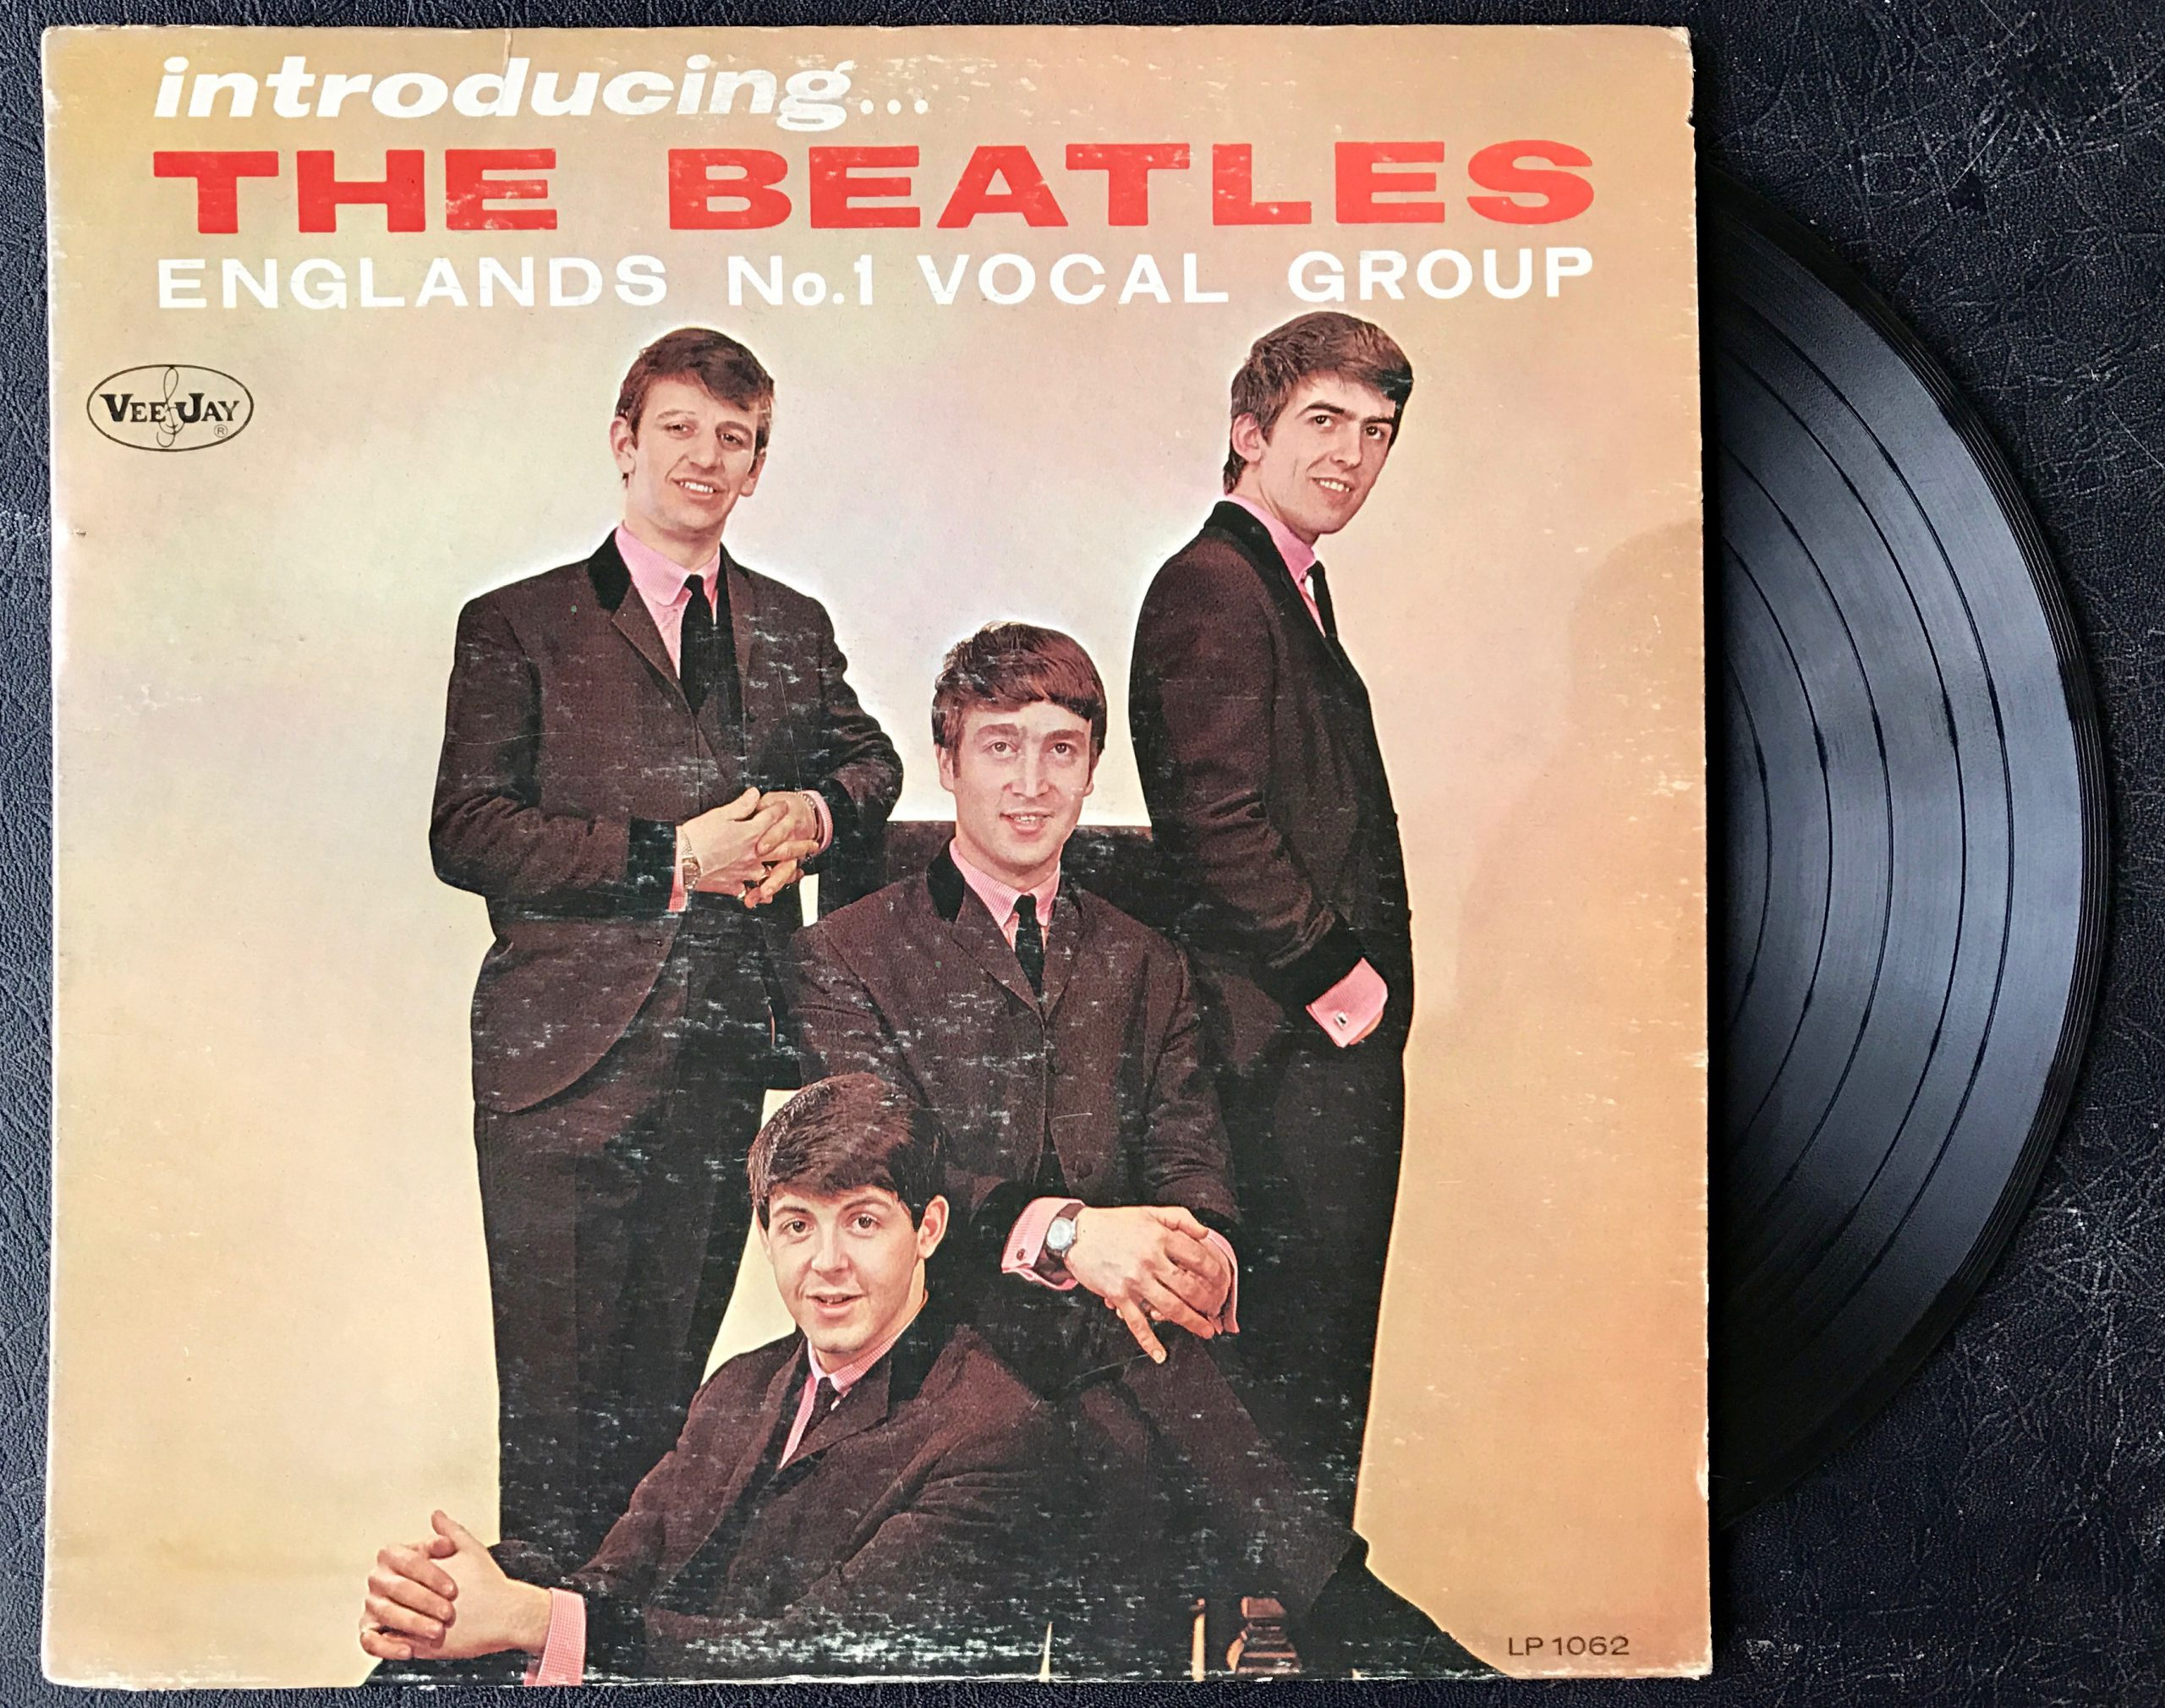 Vee-Jay Records History - Introducing the Beatles